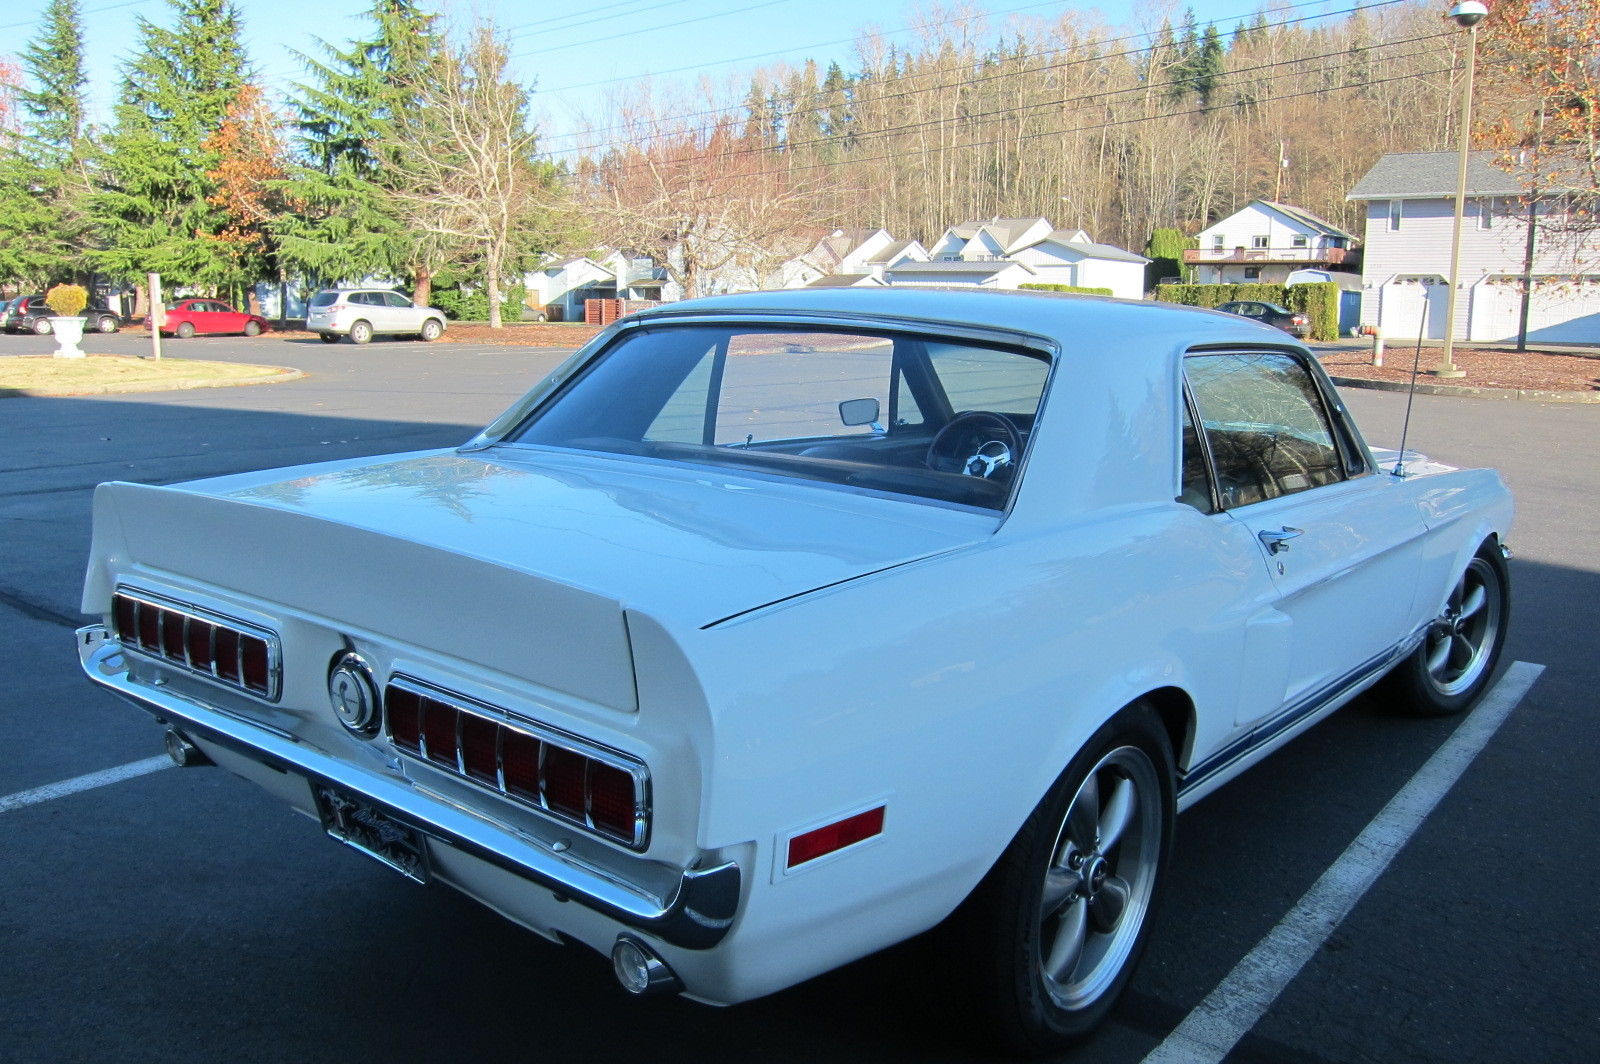 1968 Ford Mustang 289 V8 Shelby Gt350 Coupe Recreation 17